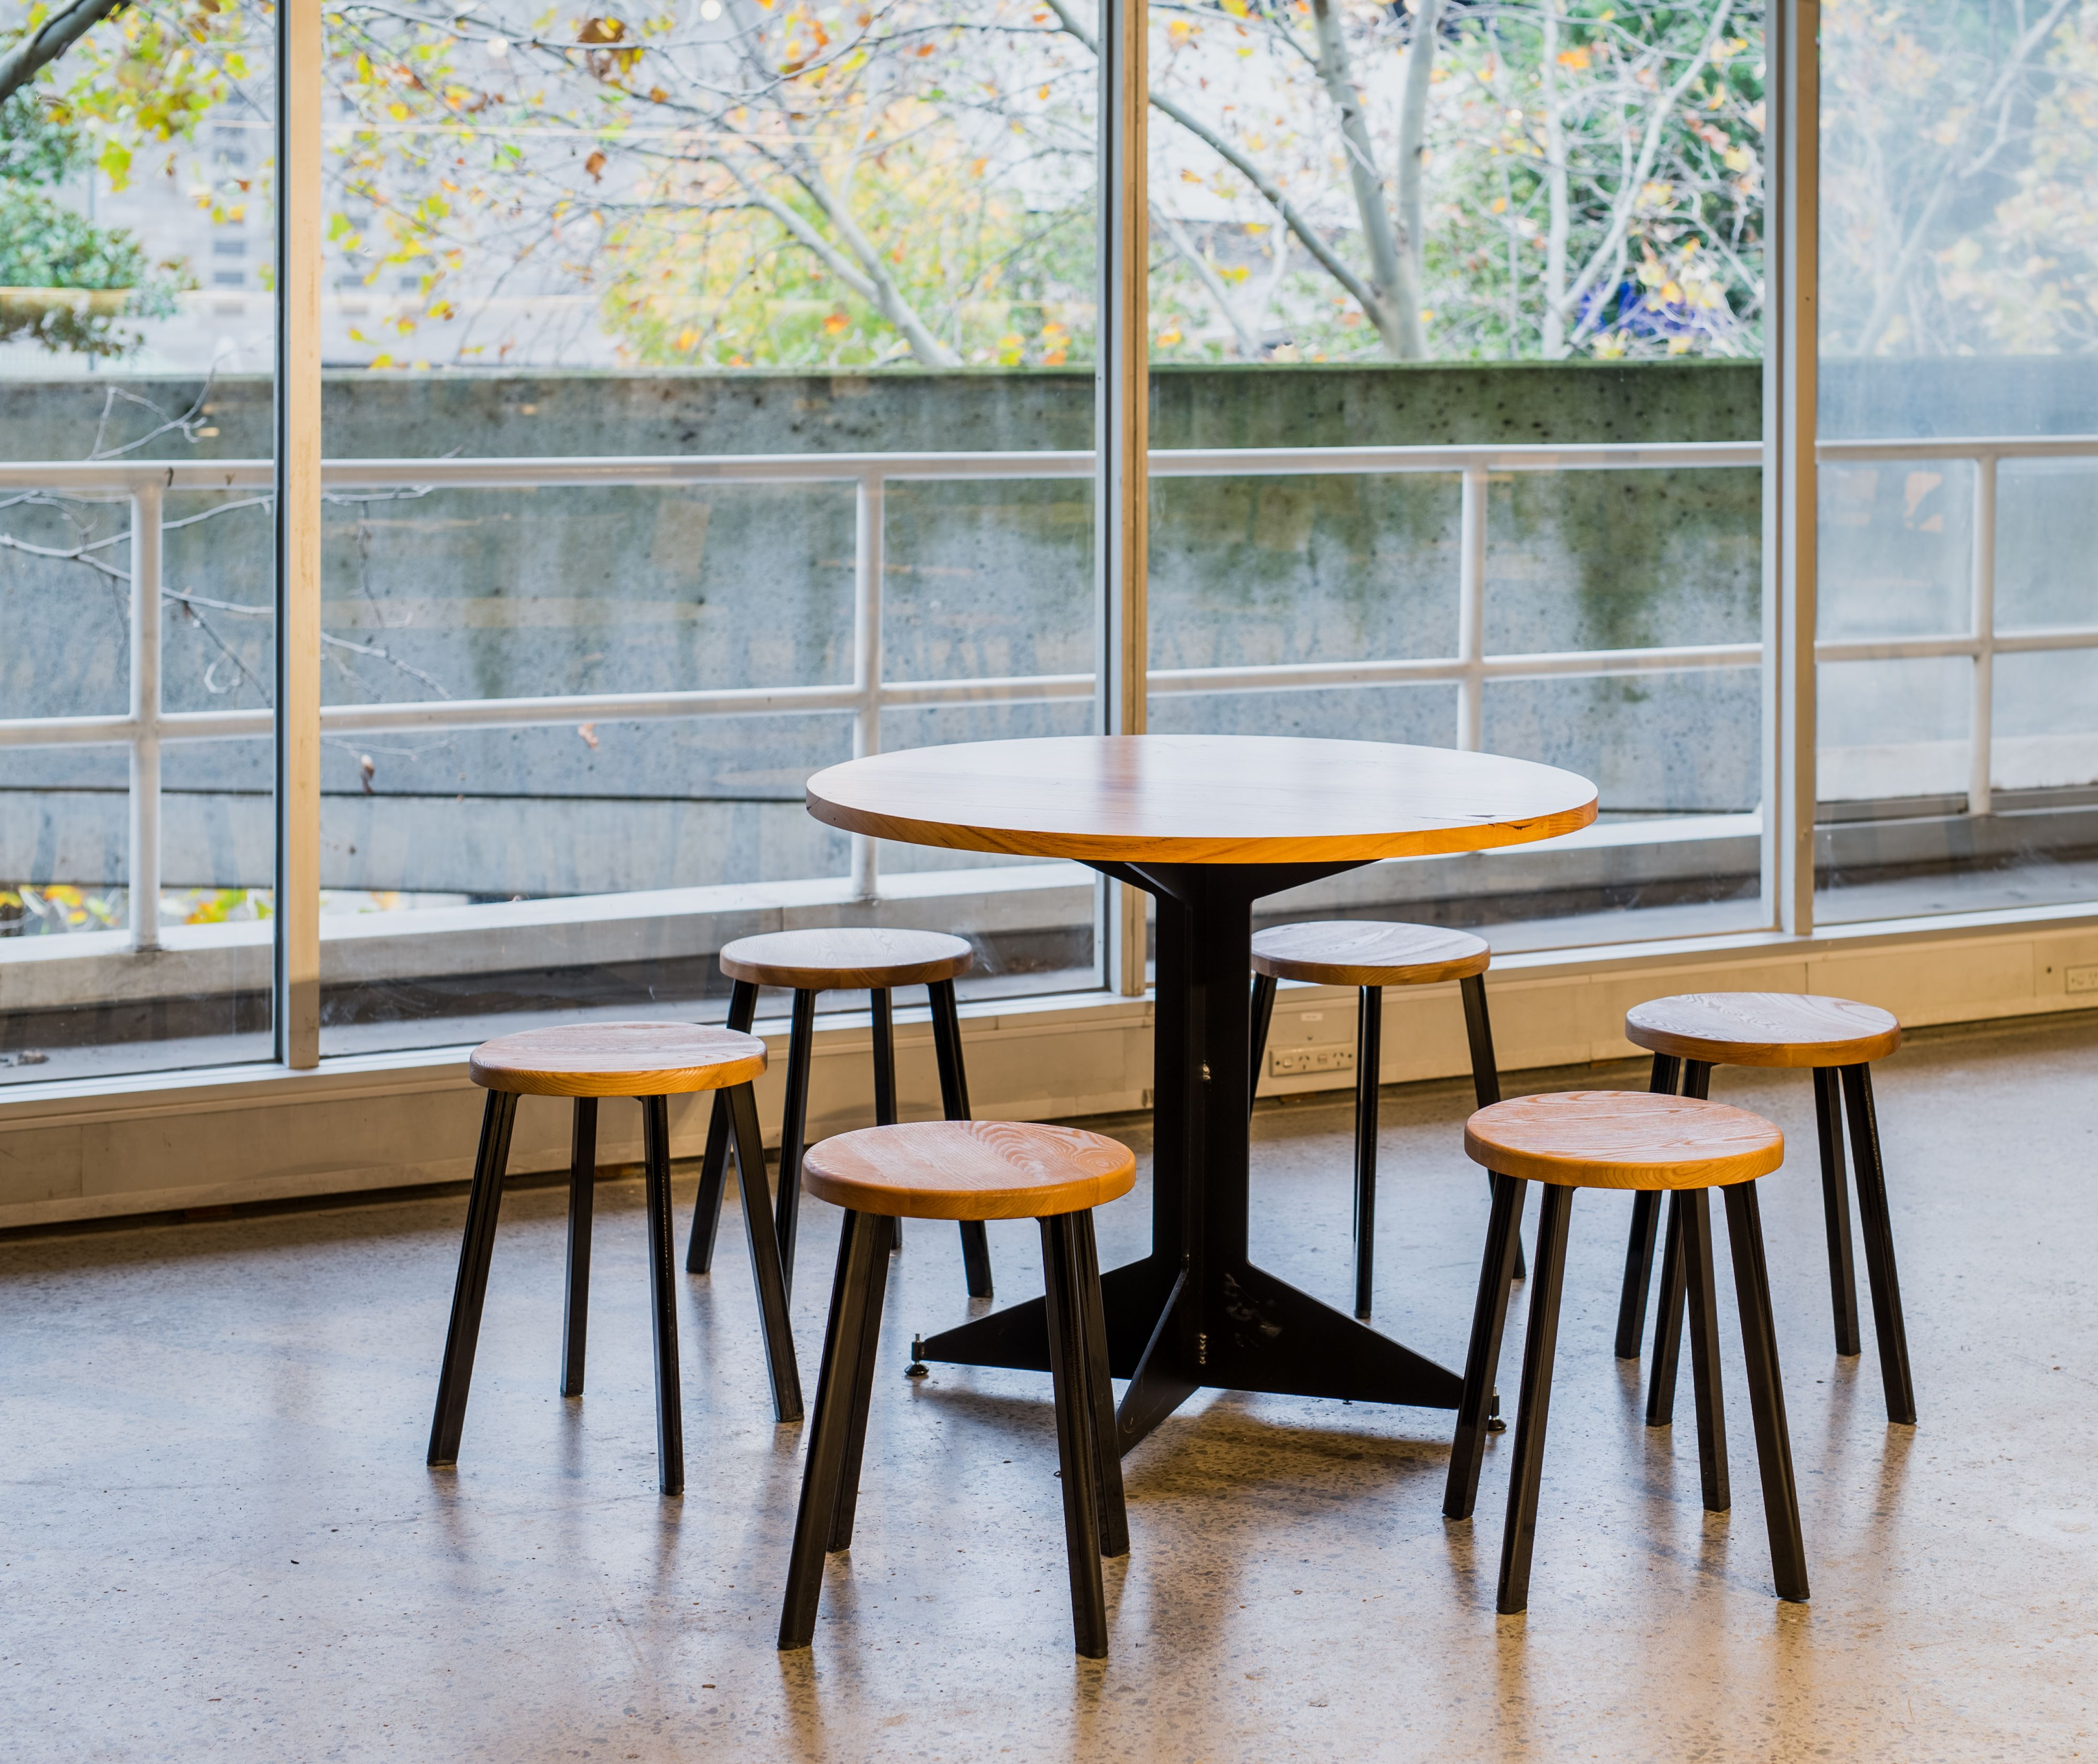 The Willow Stool also complemented this trio in a natural timber finish with the black gloss powder-coated frame. The backless design is perfect for those dining in their tutus.  http://www.prototype.net.au/projects/acmi.html